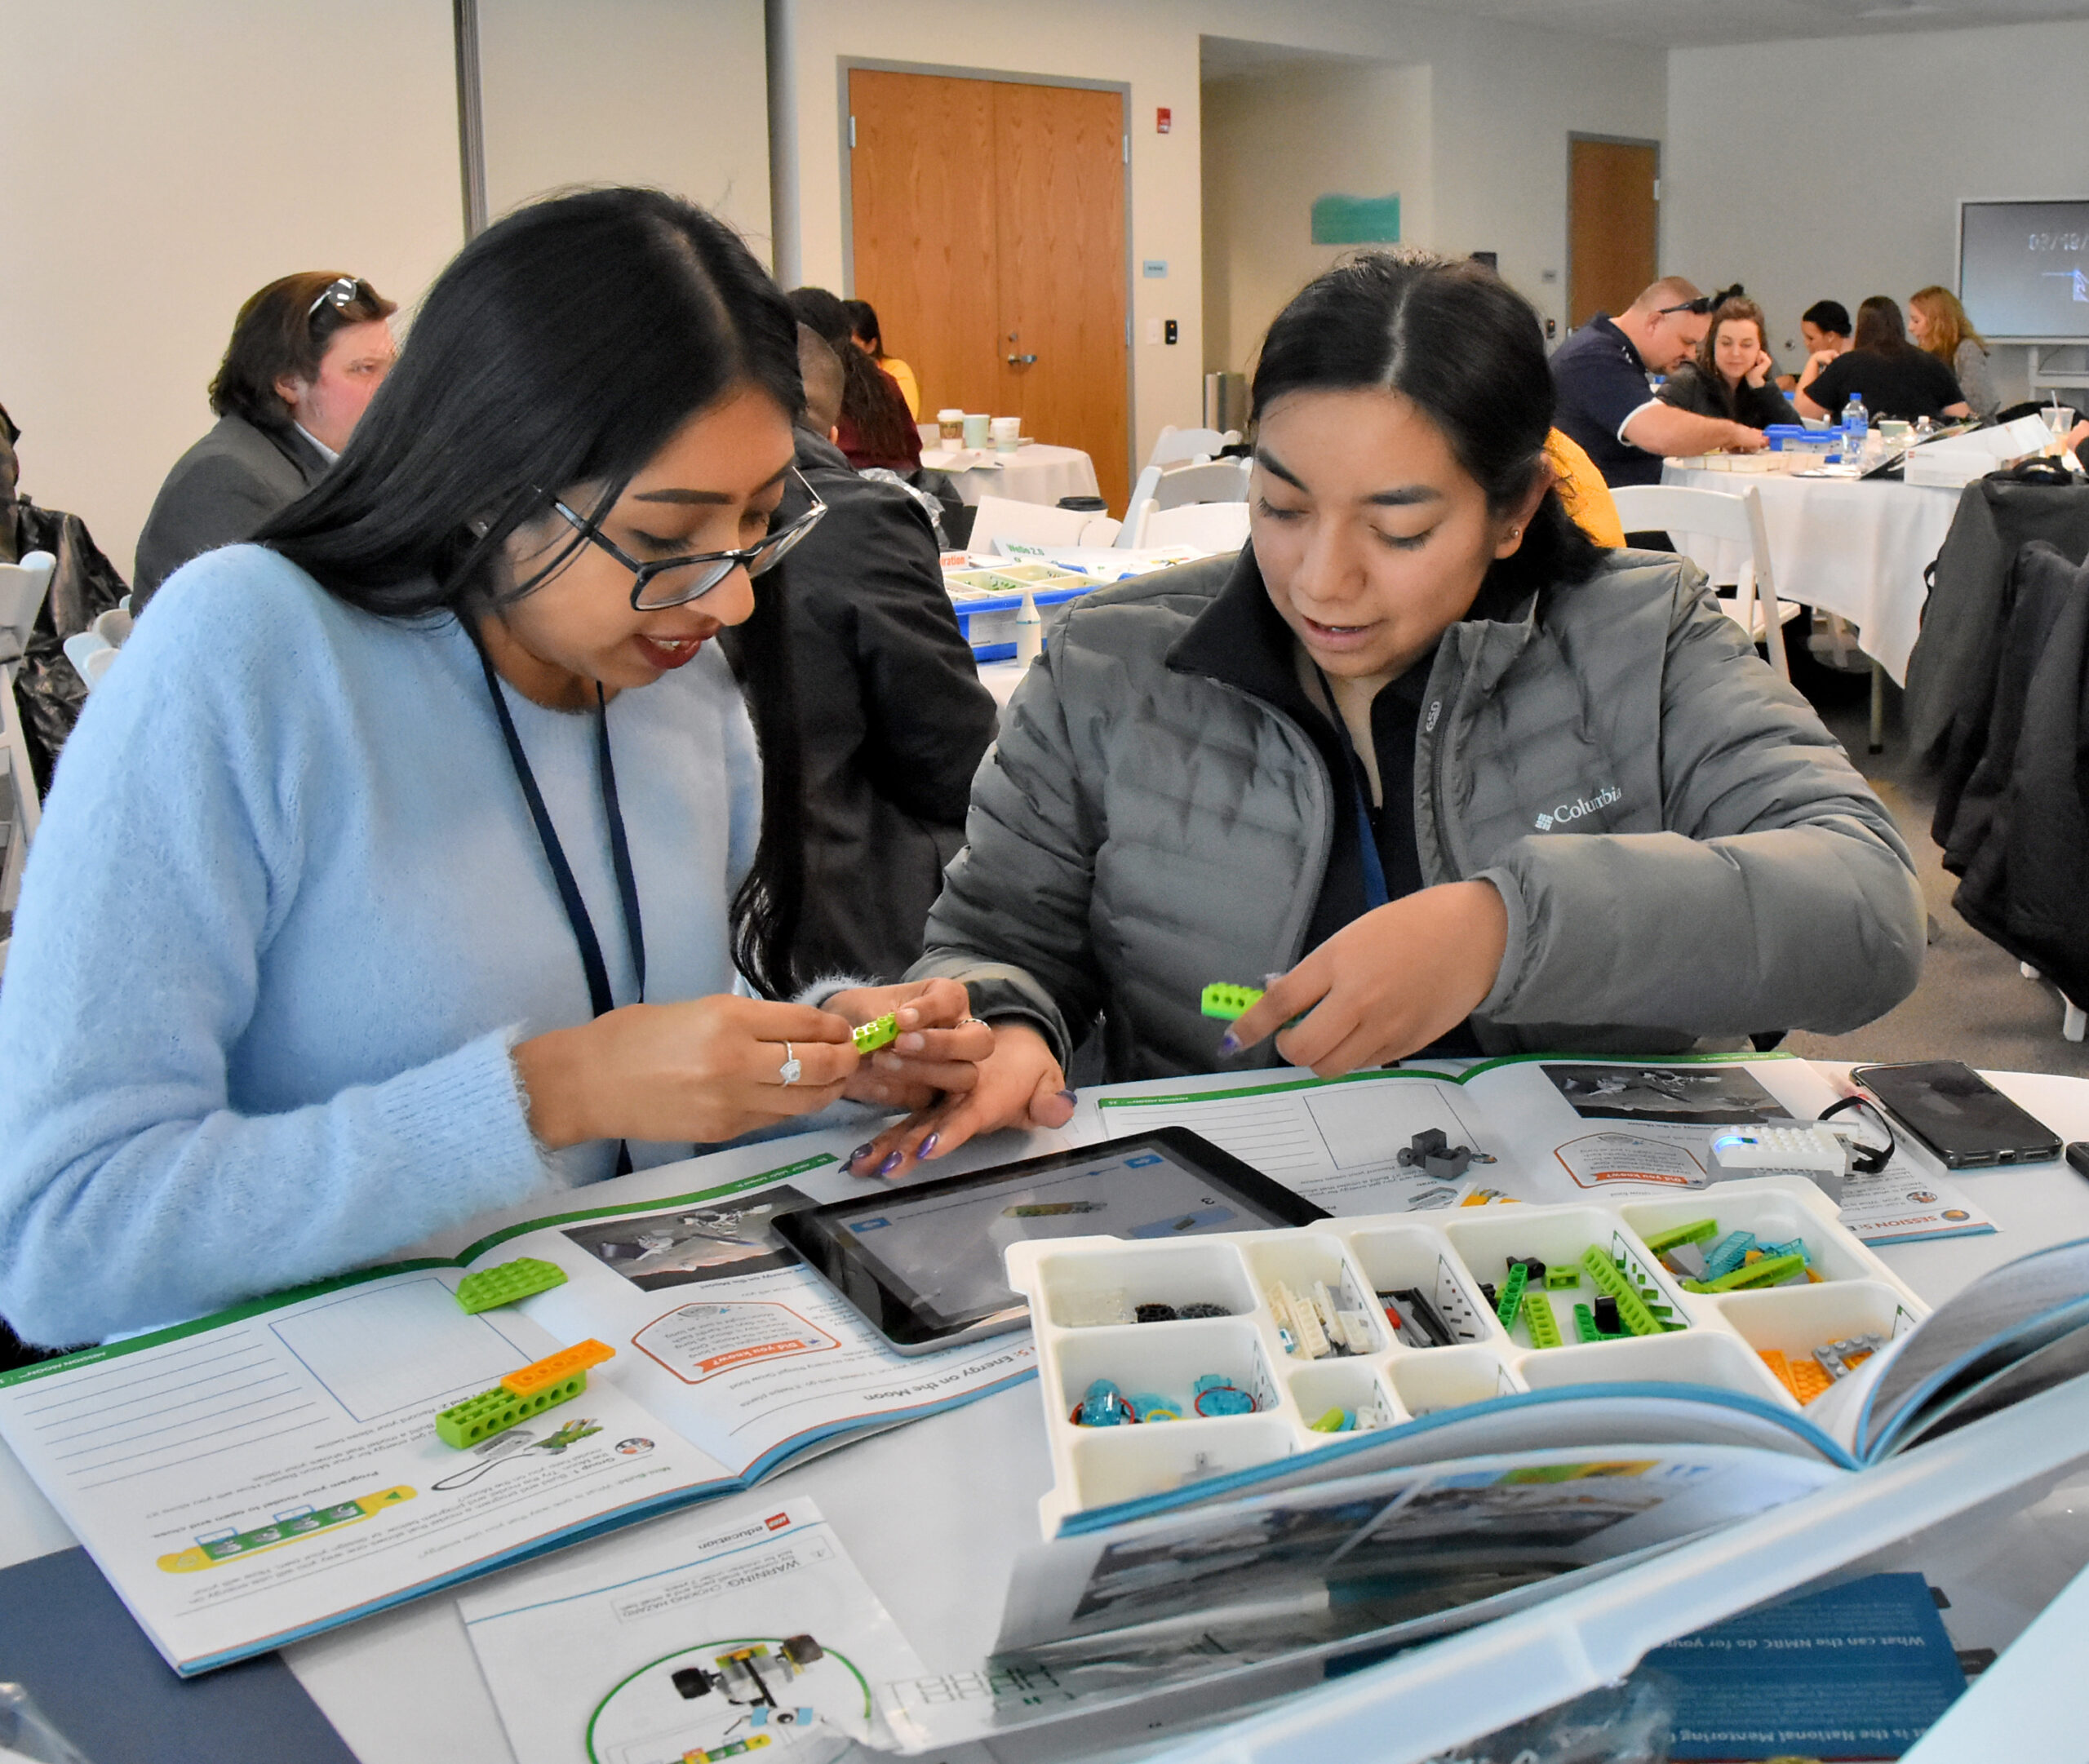 Mystic Aquarium's National Youth Conservation Initiative Featured at National Mentoring Summit